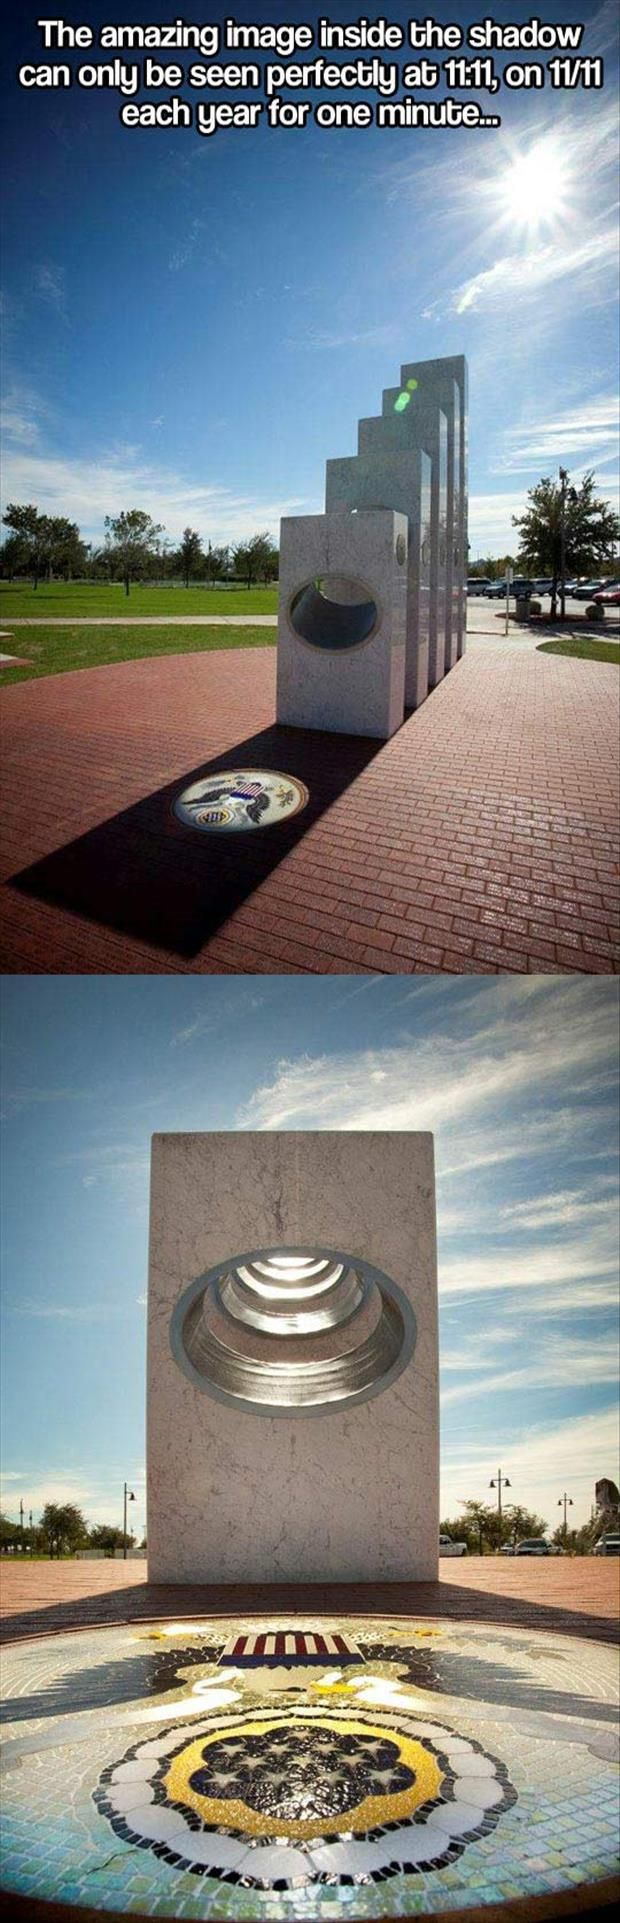 Dedicated on 11/11/11 at 11:11 Am. The Anthem Veterans Memorial in Anthem Arizona was funded mostly by donations: